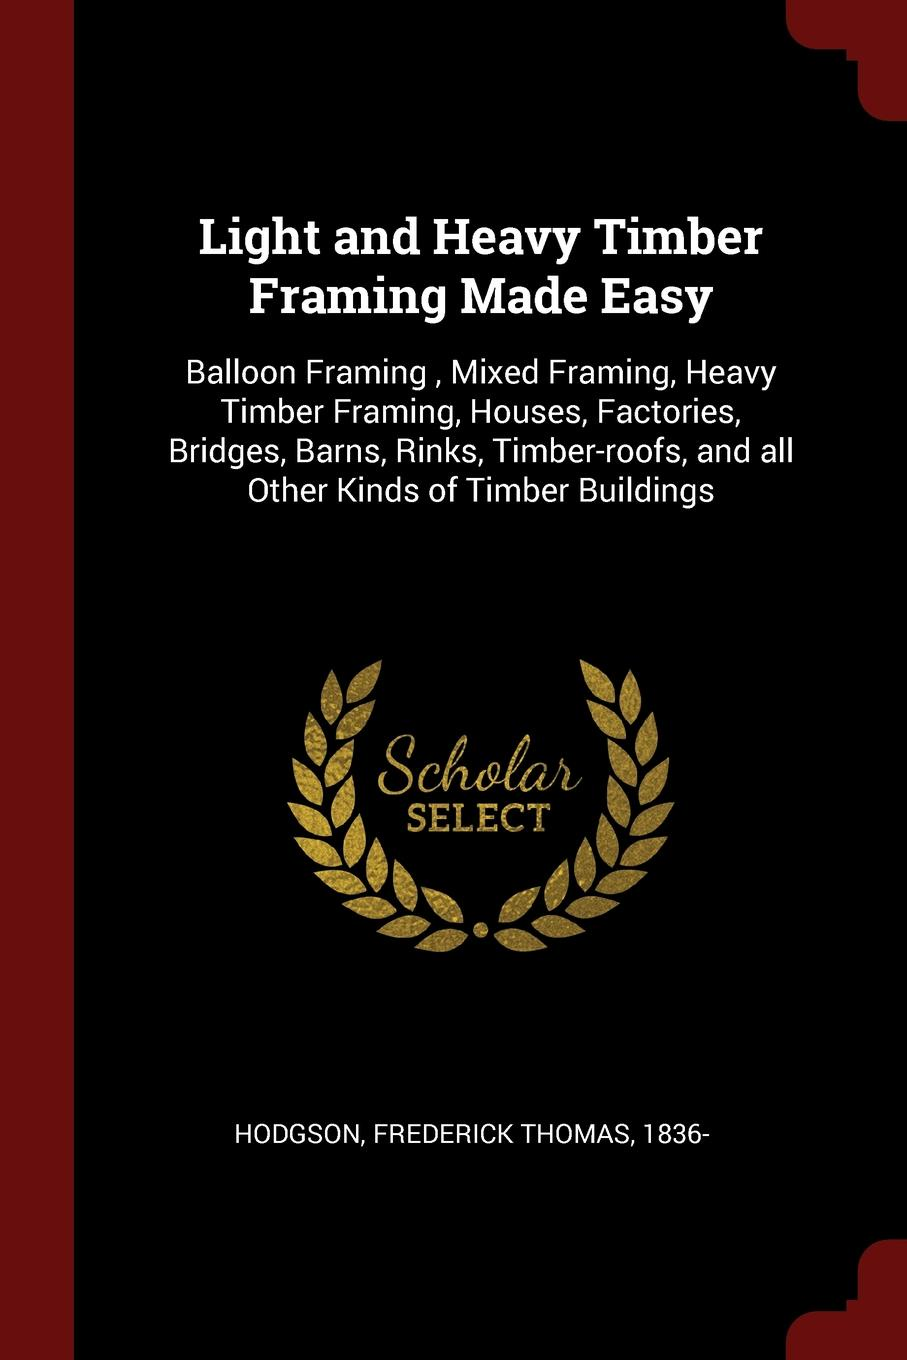 Frederick Thomas Hodgson Light and Heavy Timber Framing Made Easy. Balloon Framing , Mixed Framing, Heavy Timber Framing, Houses, Factories, Bridges, Barns, Rinks, Timber-roofs, and all Other Kinds of Timber Buildings